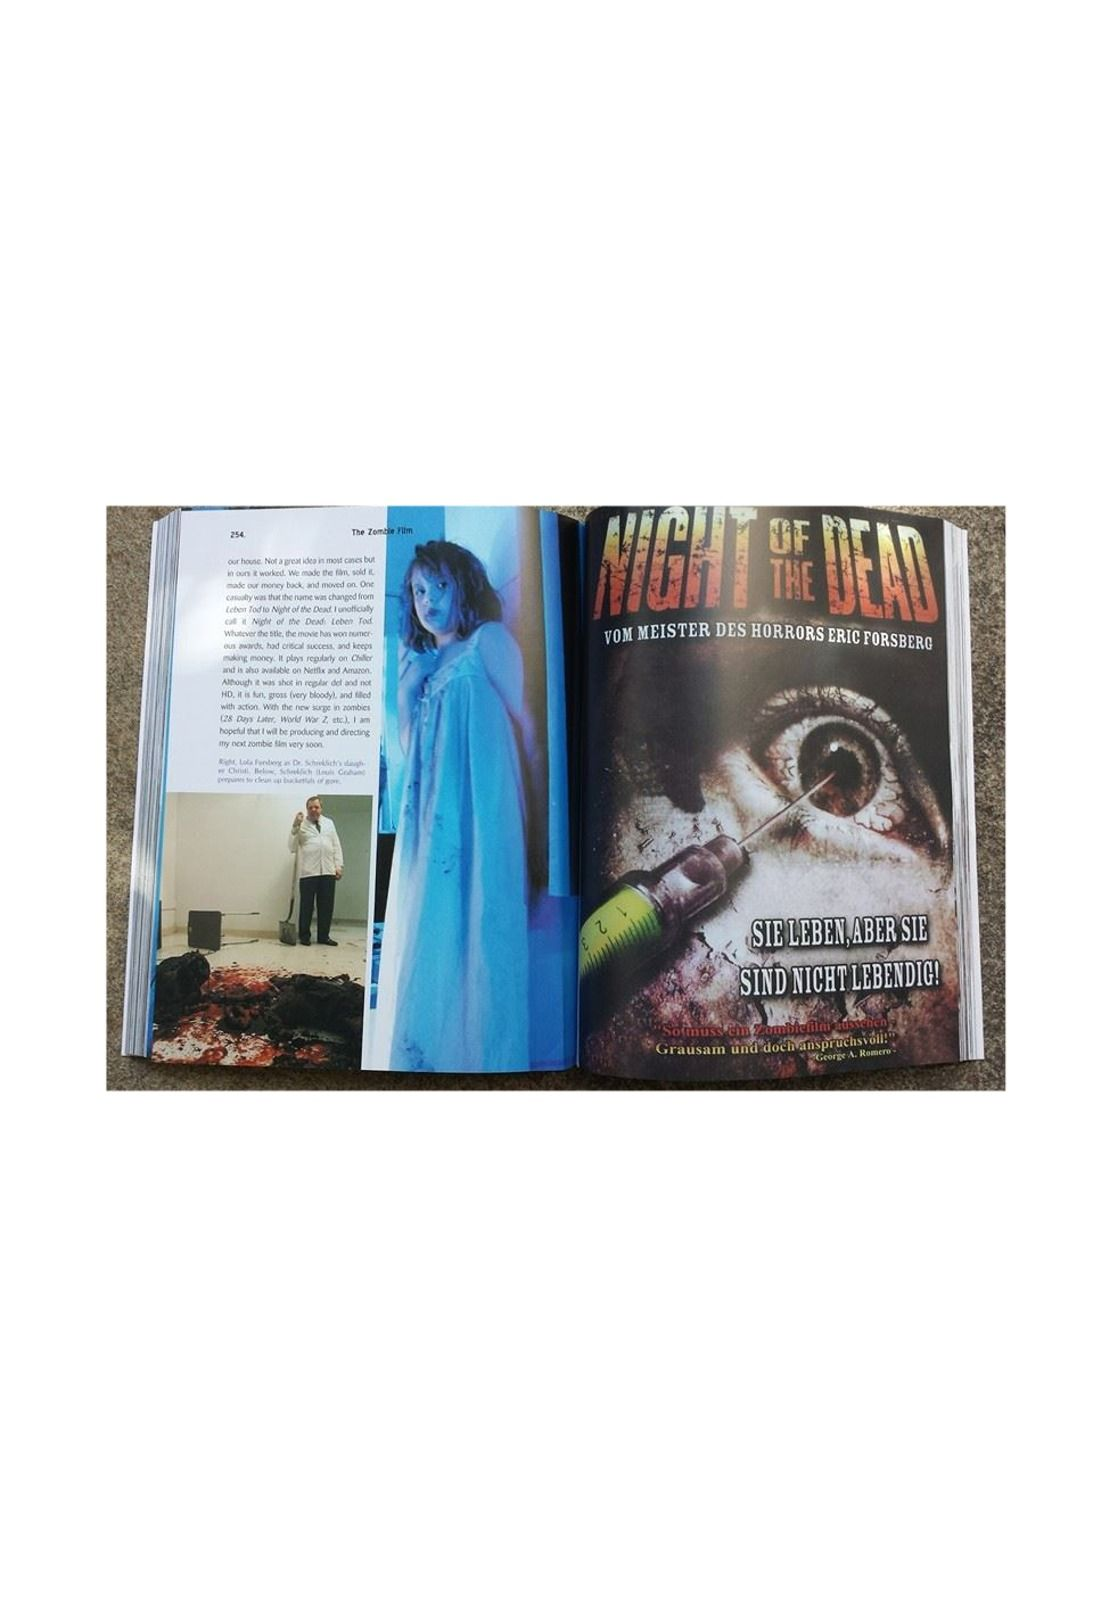 The Final 2 Pages From The Zombie Film Anthology On My Movie Night Of The Dead I Movie Film Night Of The Dead